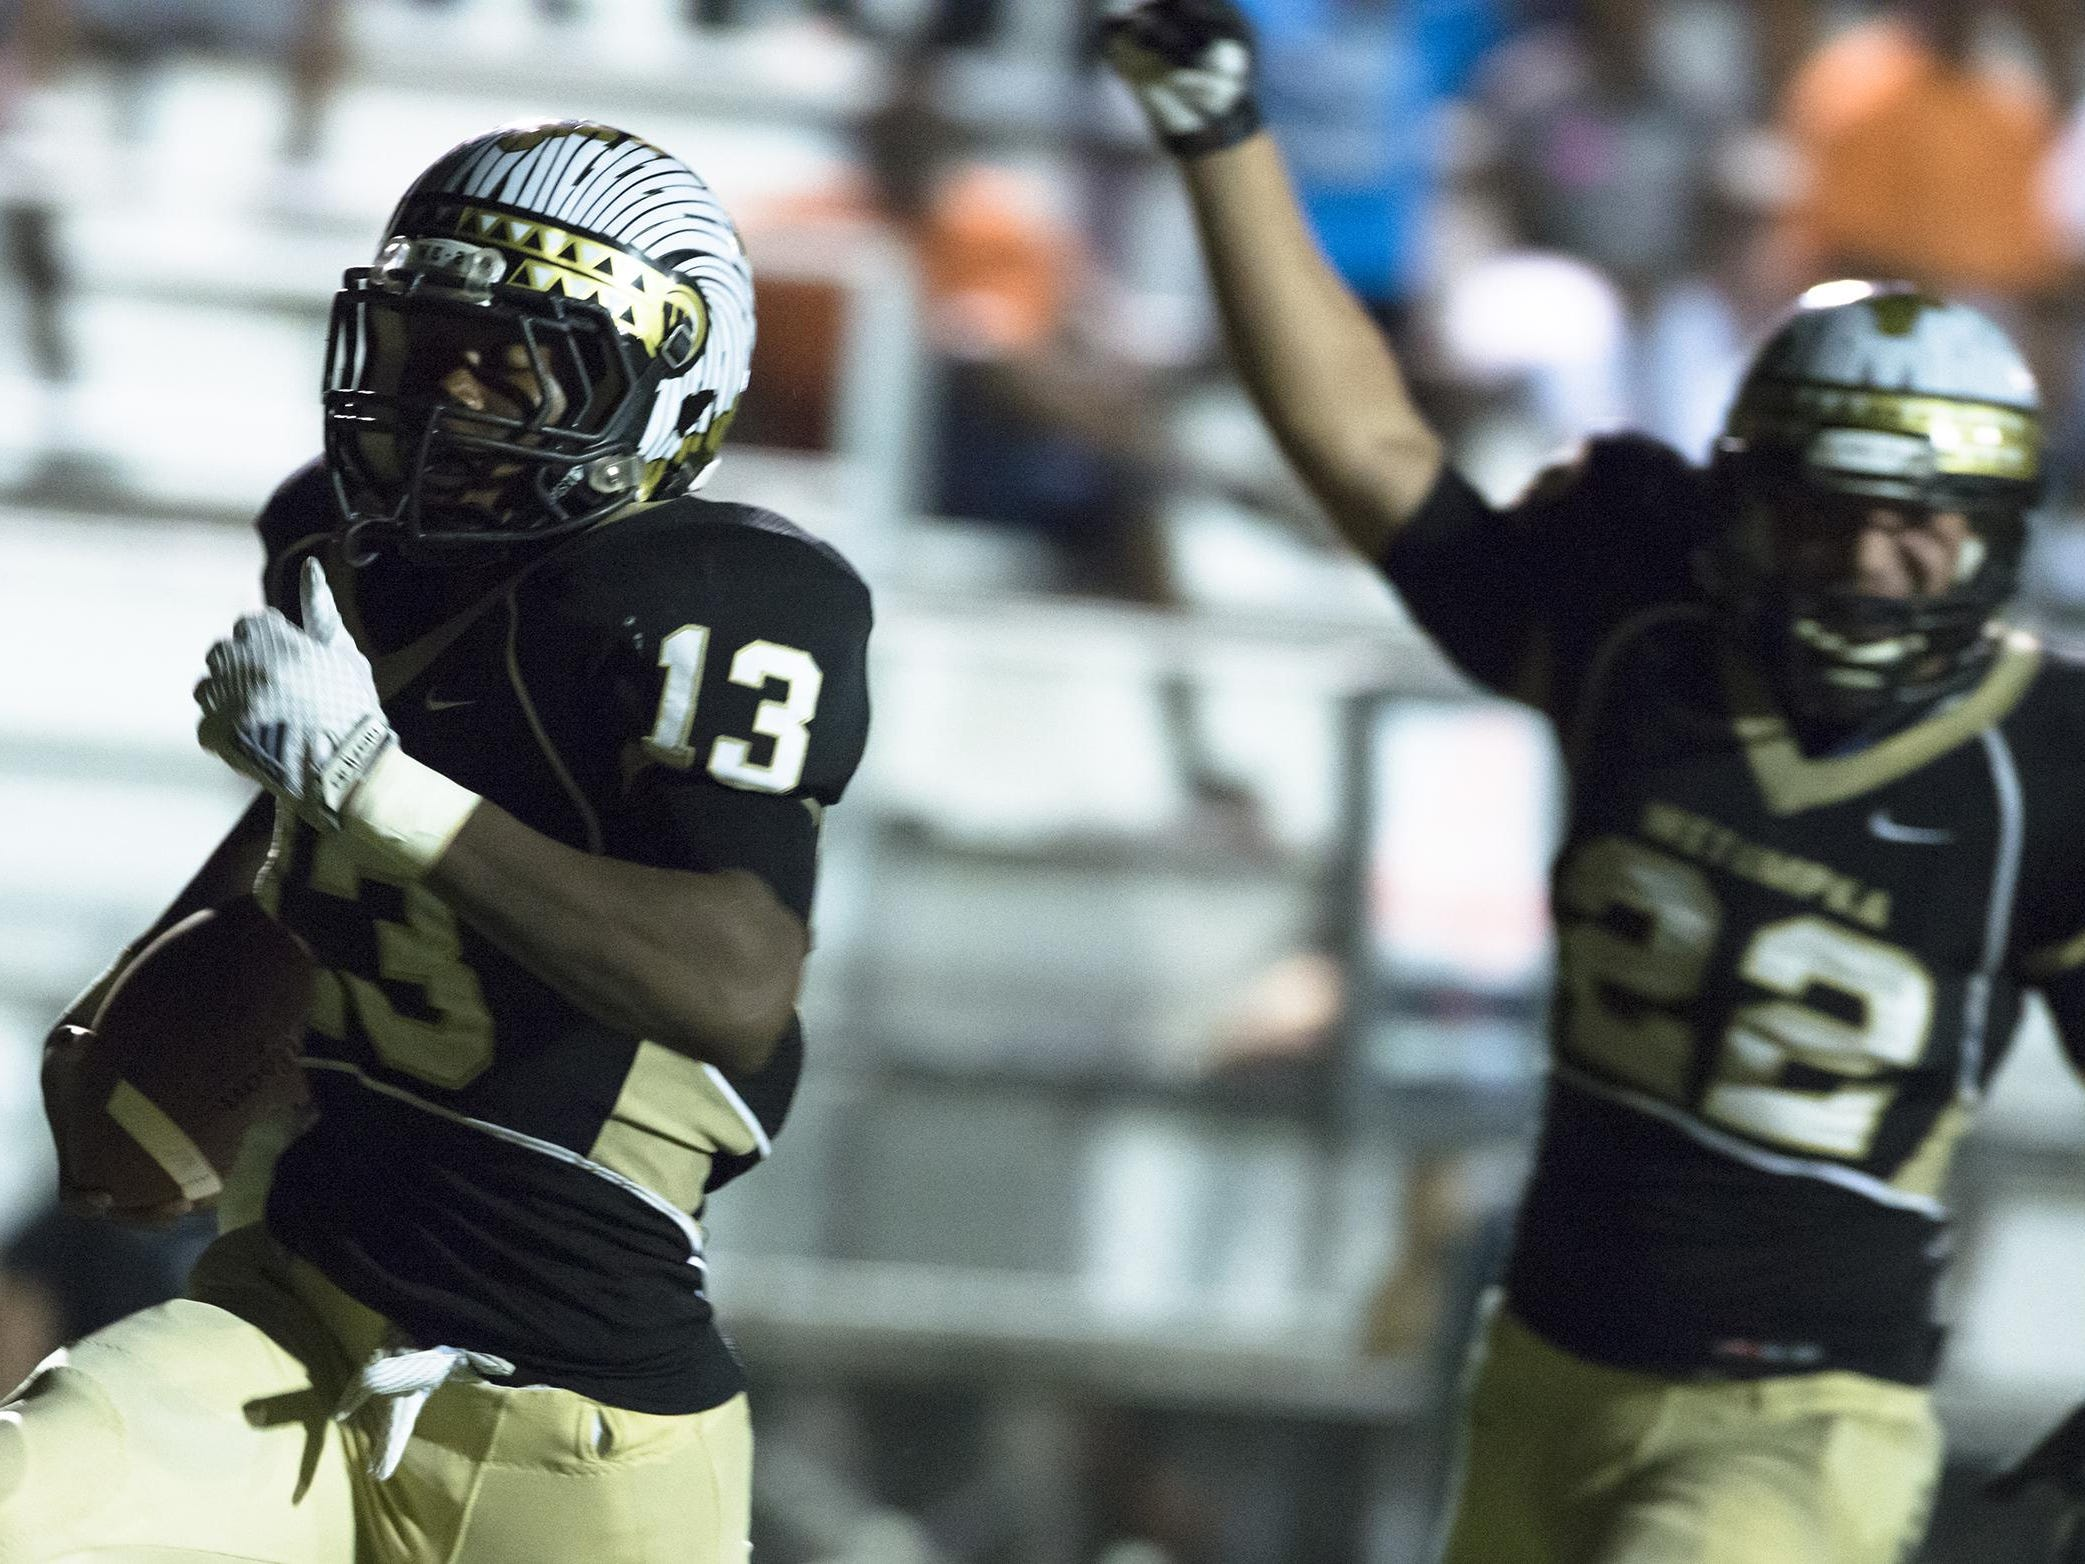 PHOTOS BY ALBERT CESARE/ADVERTISERWetumpka's Khaliq Jones scores a touchdown and was able to add a two-point conversion to tie the game at 36 in the fourth quarter against Huffman. Wetumpka's Khaliq Jones (13) runs for a touchdown to tie the game after a two point conversion at 36-36 in the 4th quarter during the game between Wetumpka and Huffman in Wetumpka, Ala., on Friday, Aug. 29, 2014.